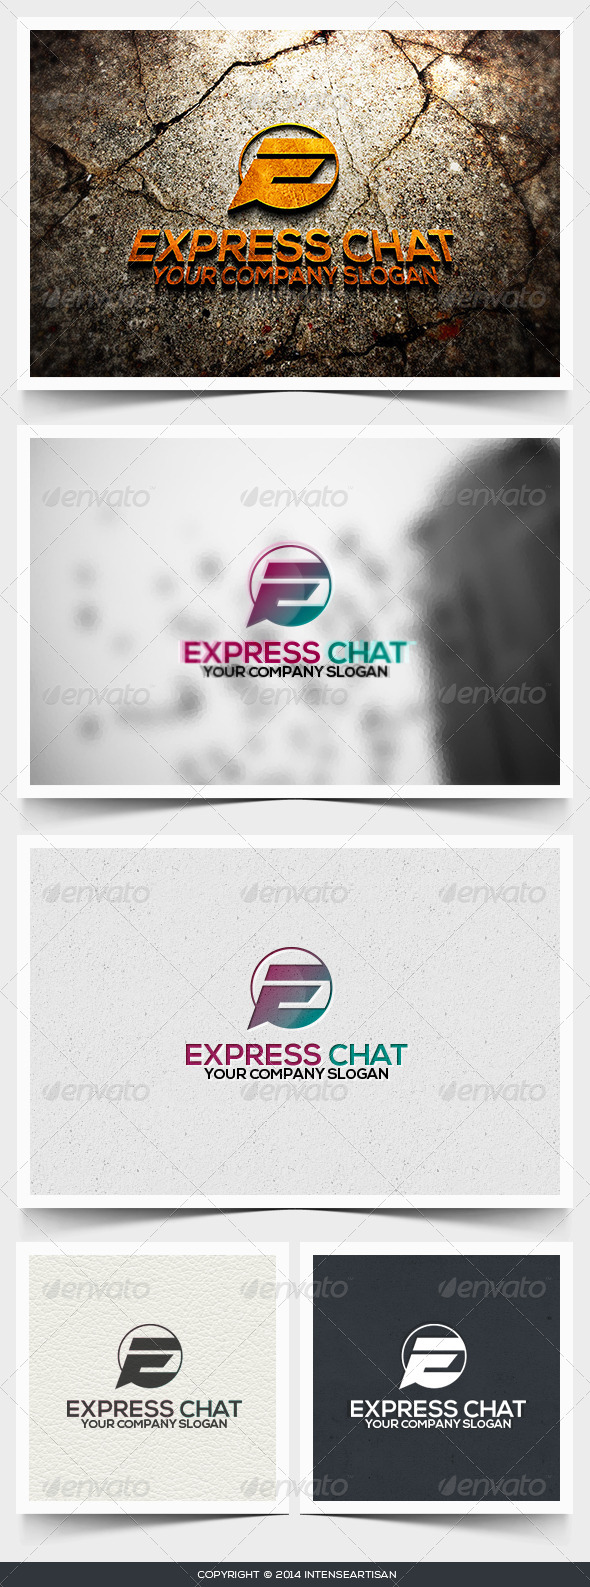 Express Chat Logo Template